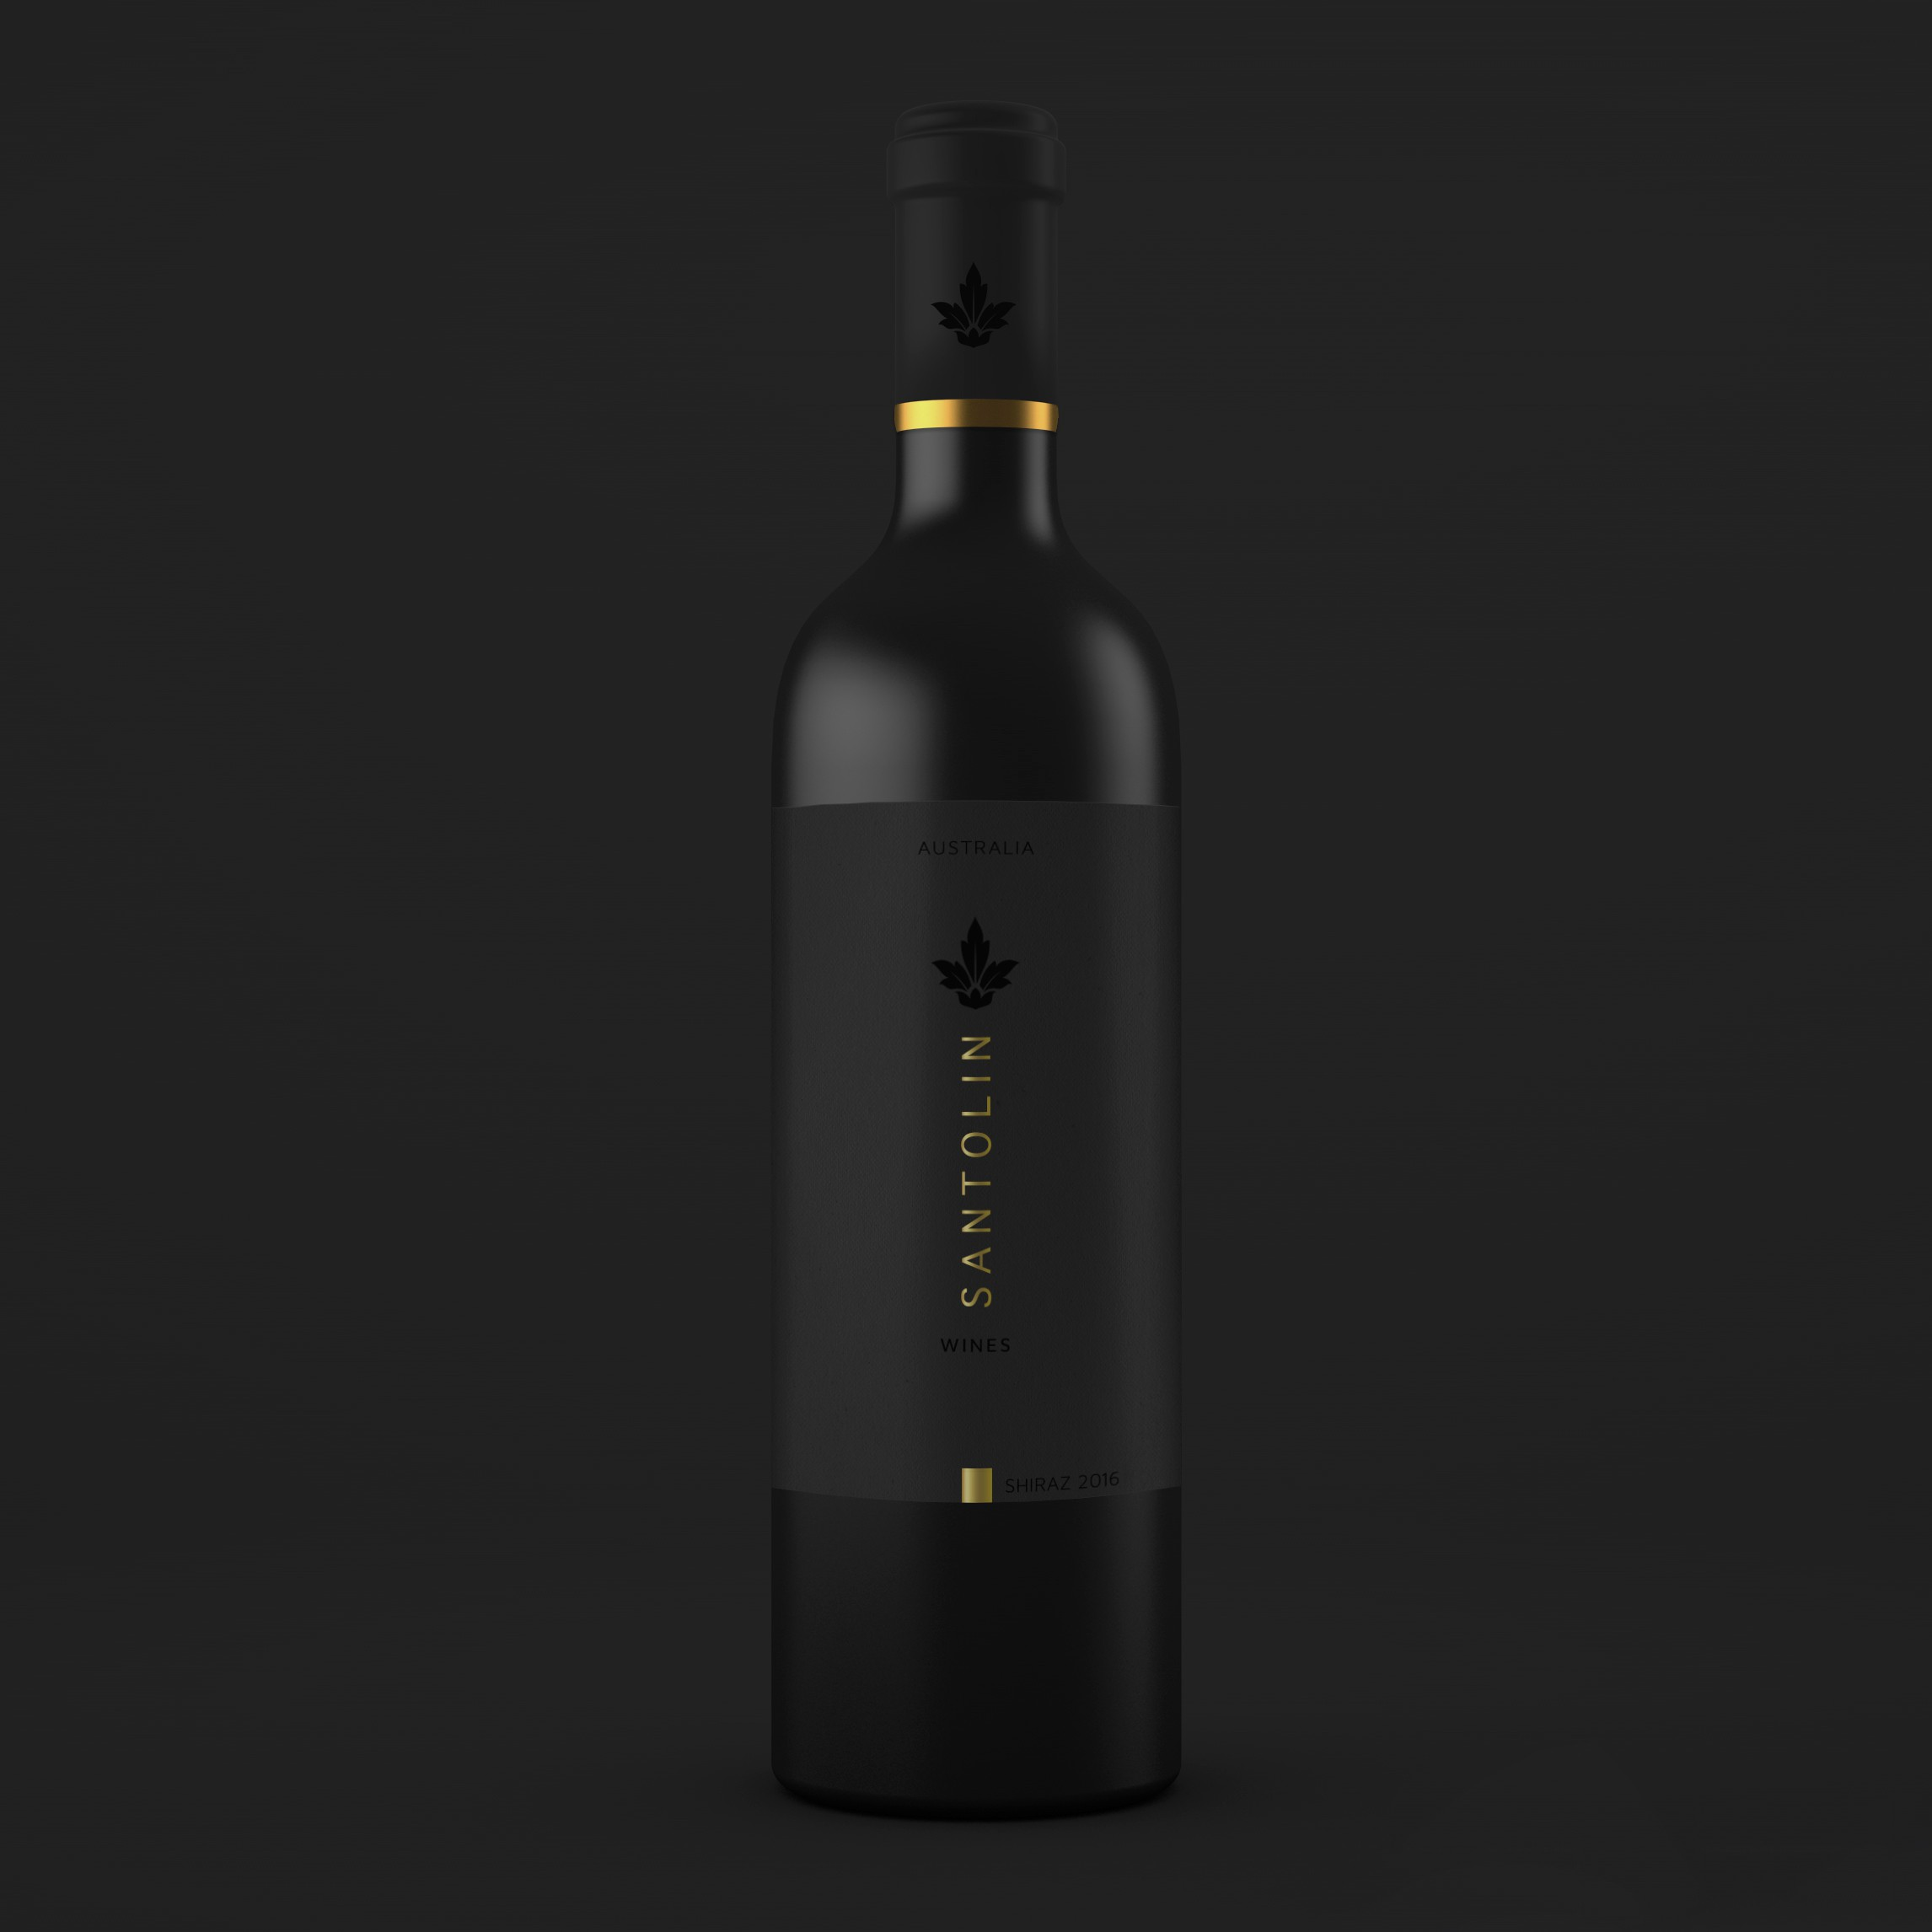 Wine label: Modern and minimal